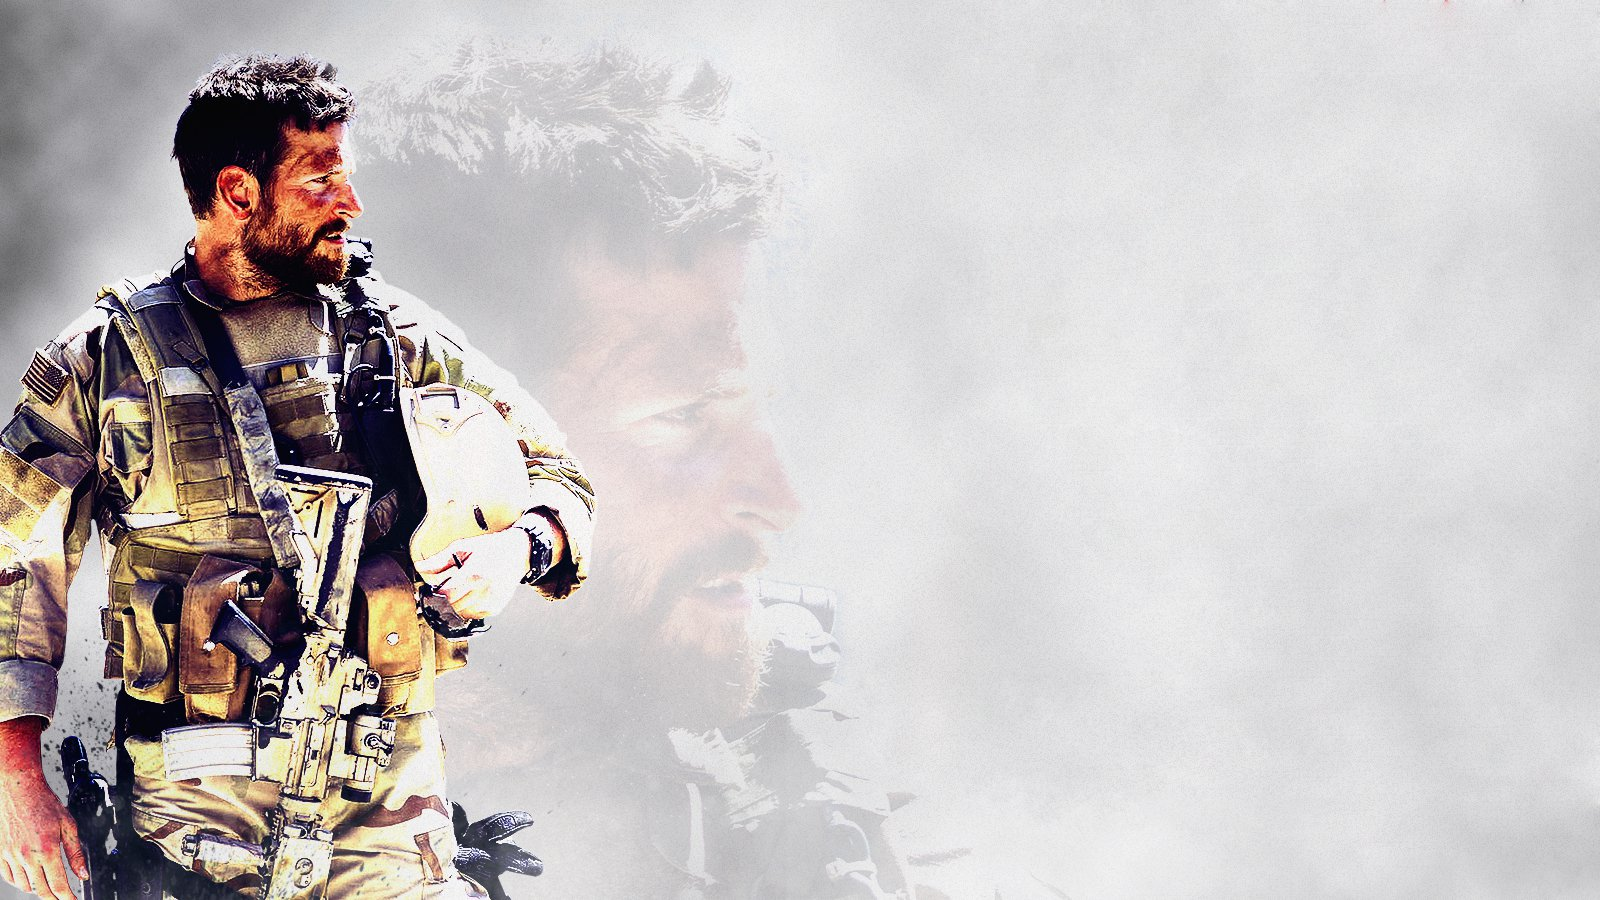 American Sniper Computer Wallpapers Desktop Backgrounds 1600x900 1600x900